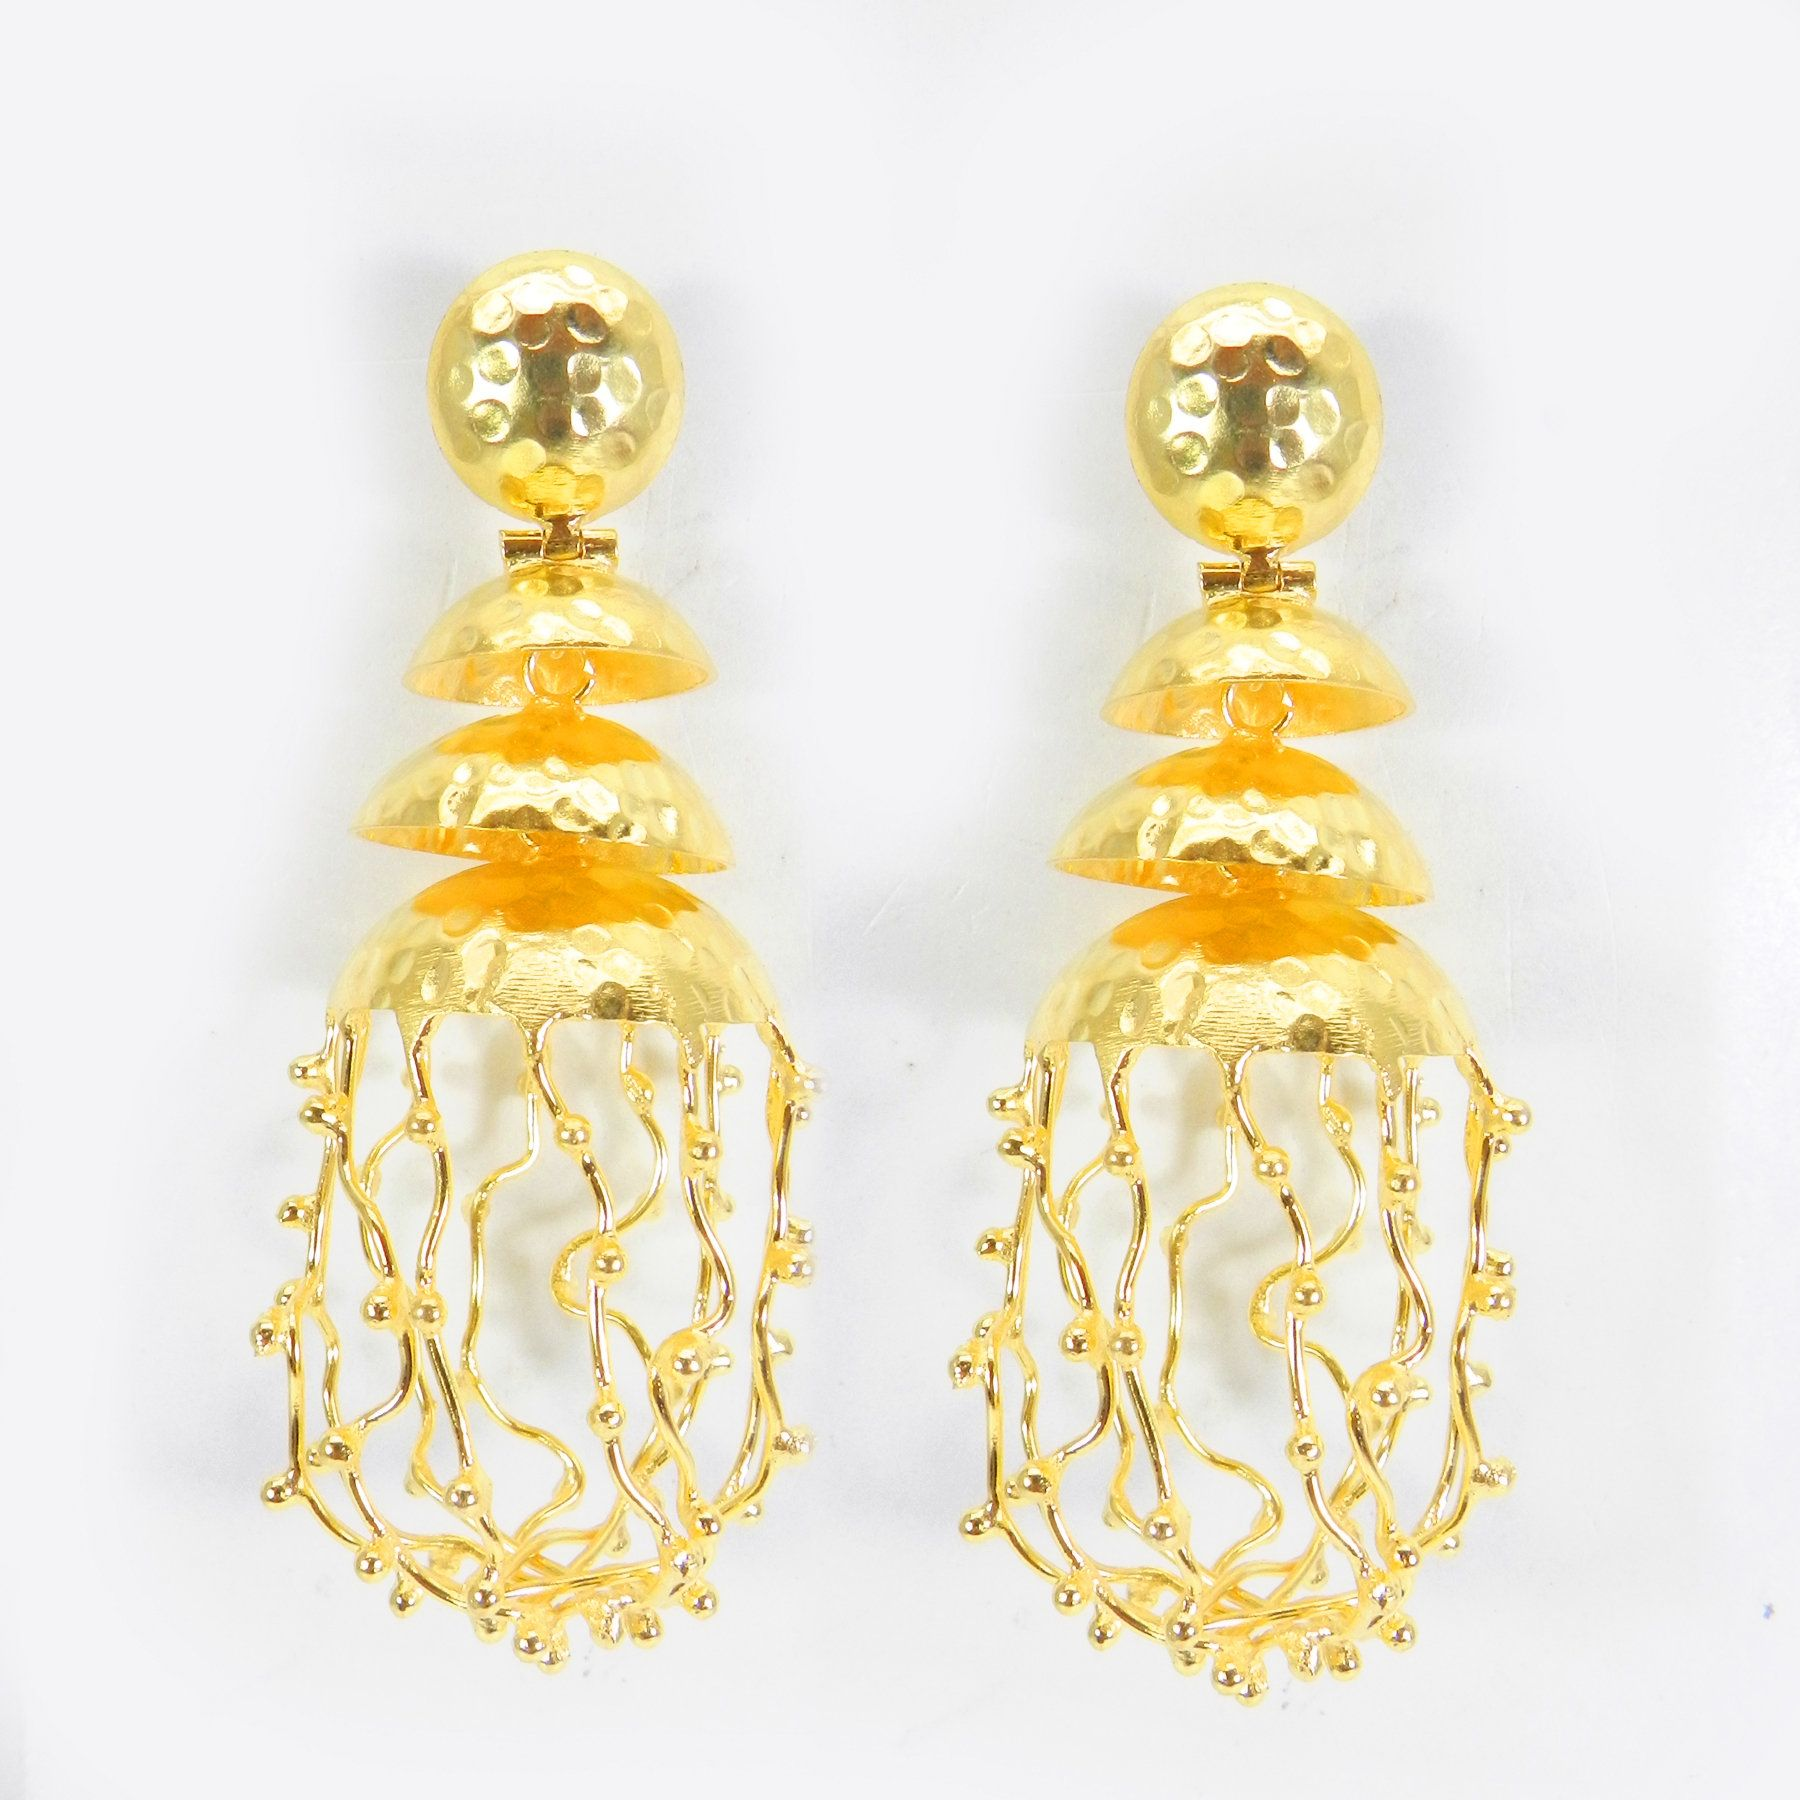 Yellow earrings on gold plated wires